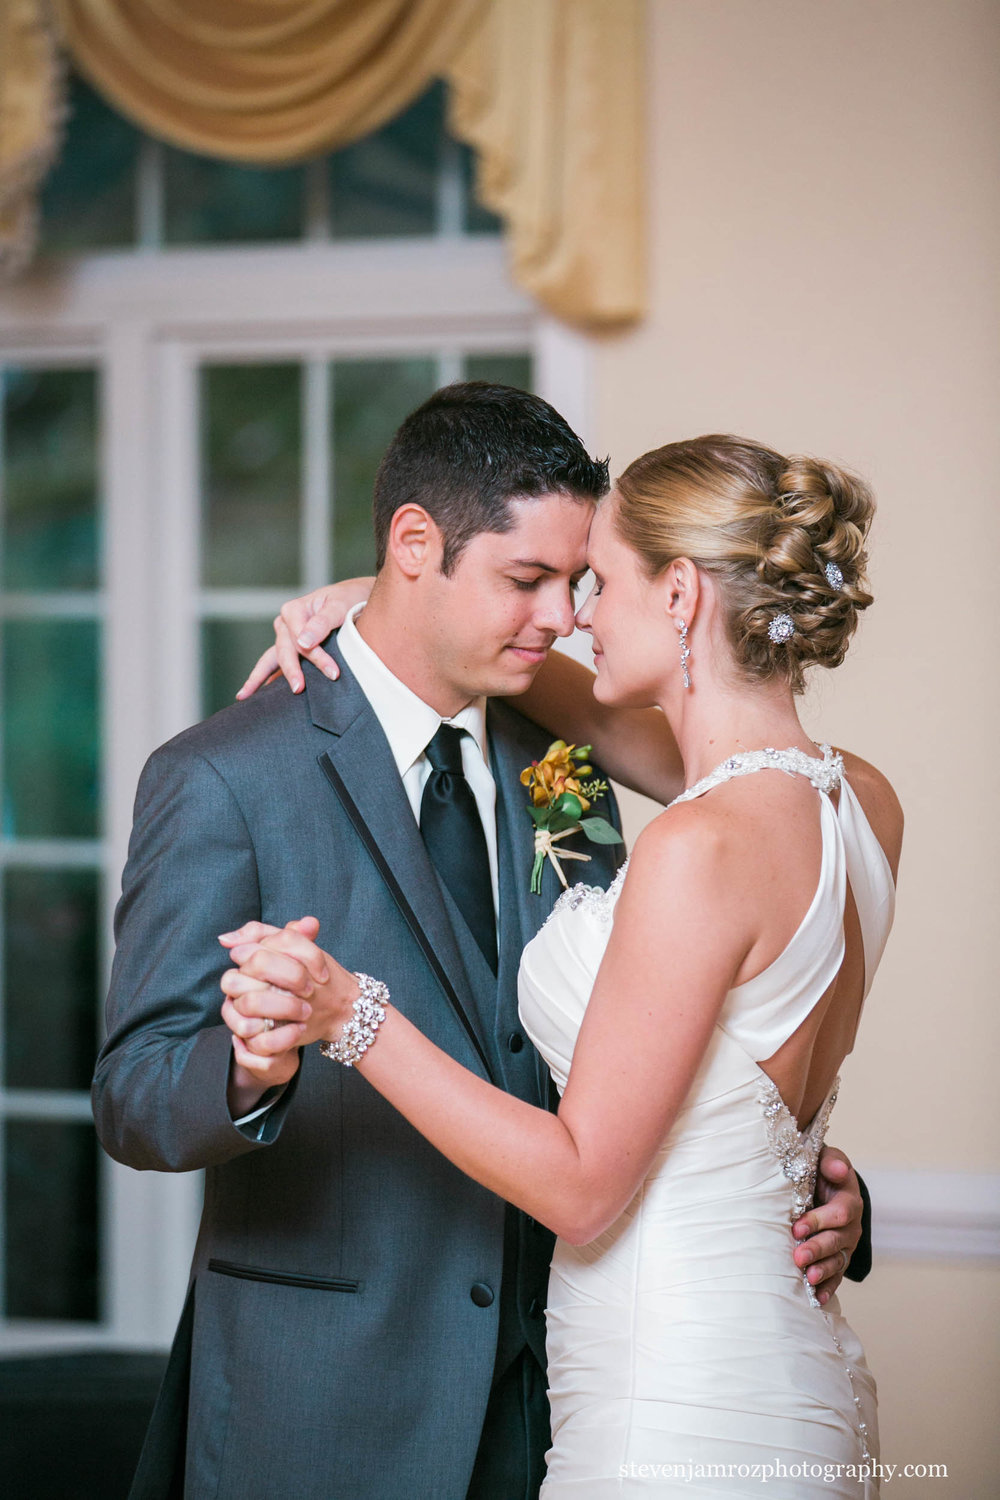 intimate-first-dance-hudson-manor-steven-jamroz-photography-0016.jpg